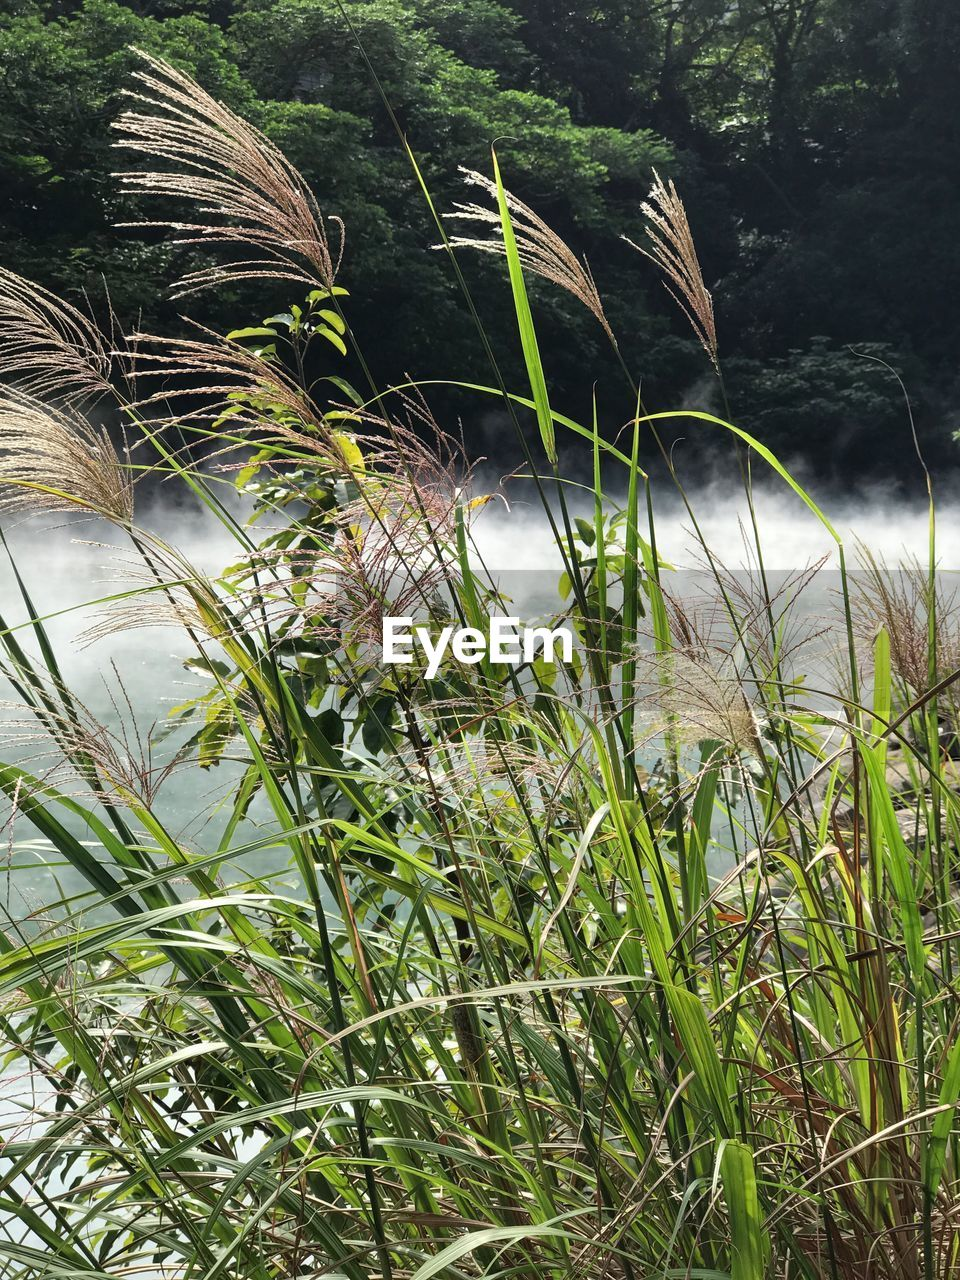 nature, growth, plant, no people, tranquility, water, day, tranquil scene, outdoors, grass, beauty in nature, river, green color, close-up, freshness